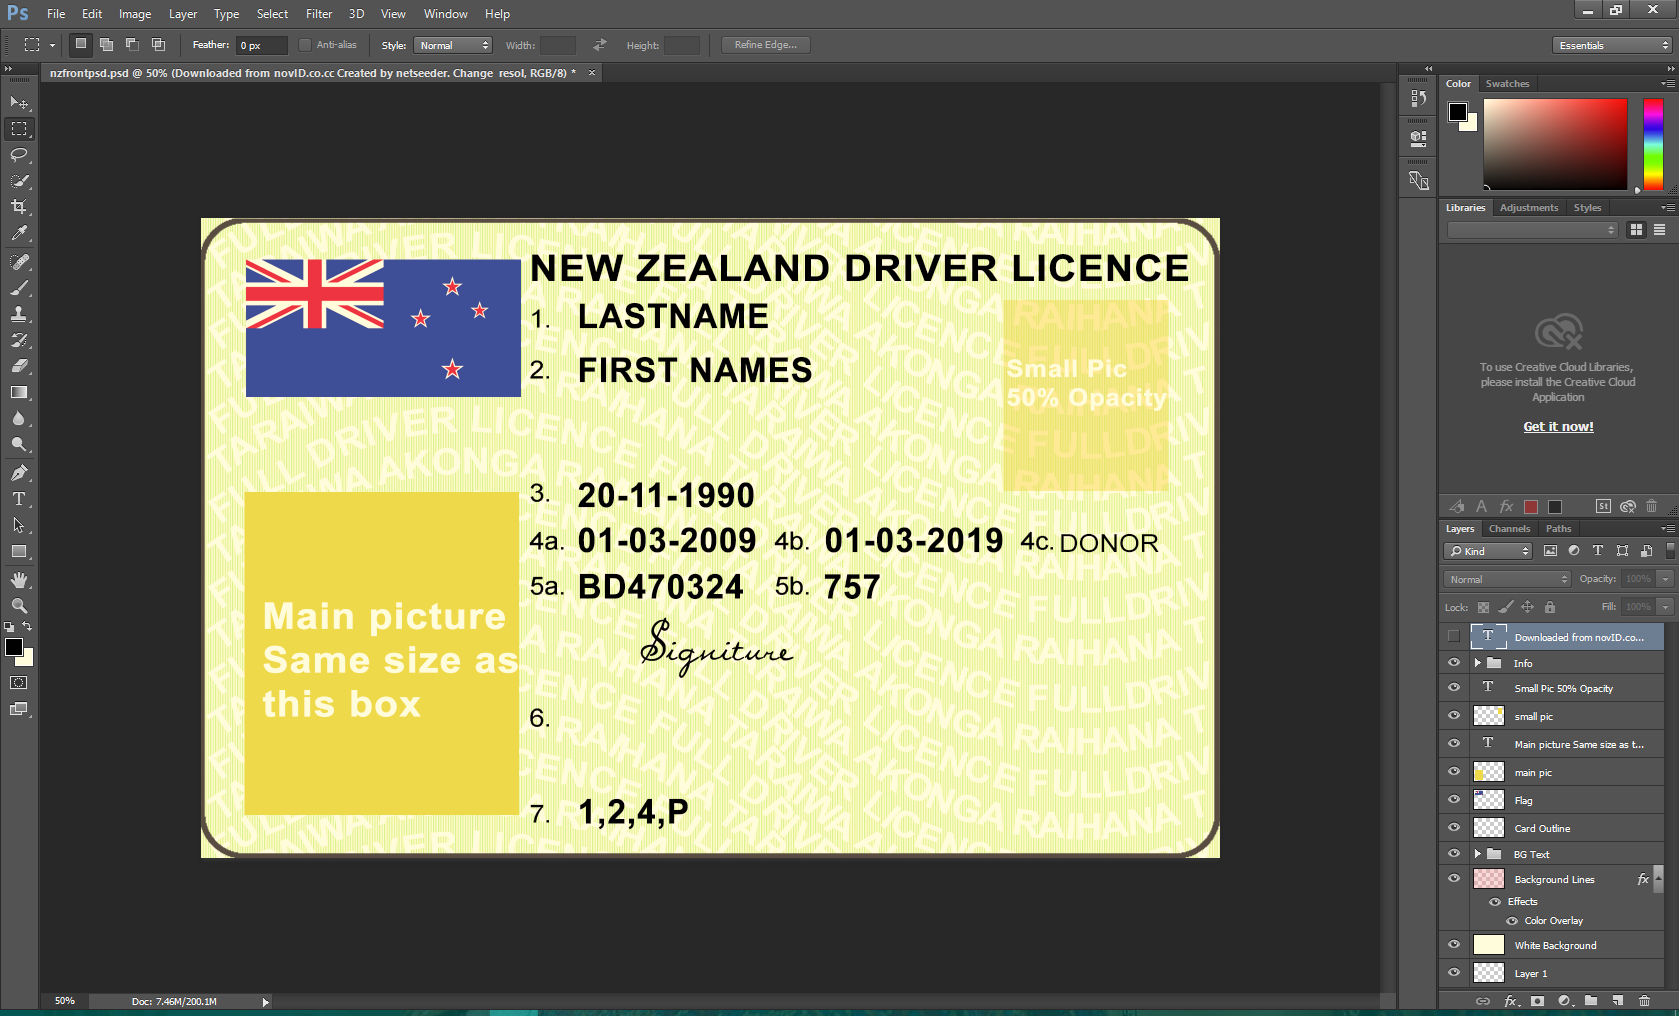 NEW ZEALAND DRIVING LEARNER AND LICENCE